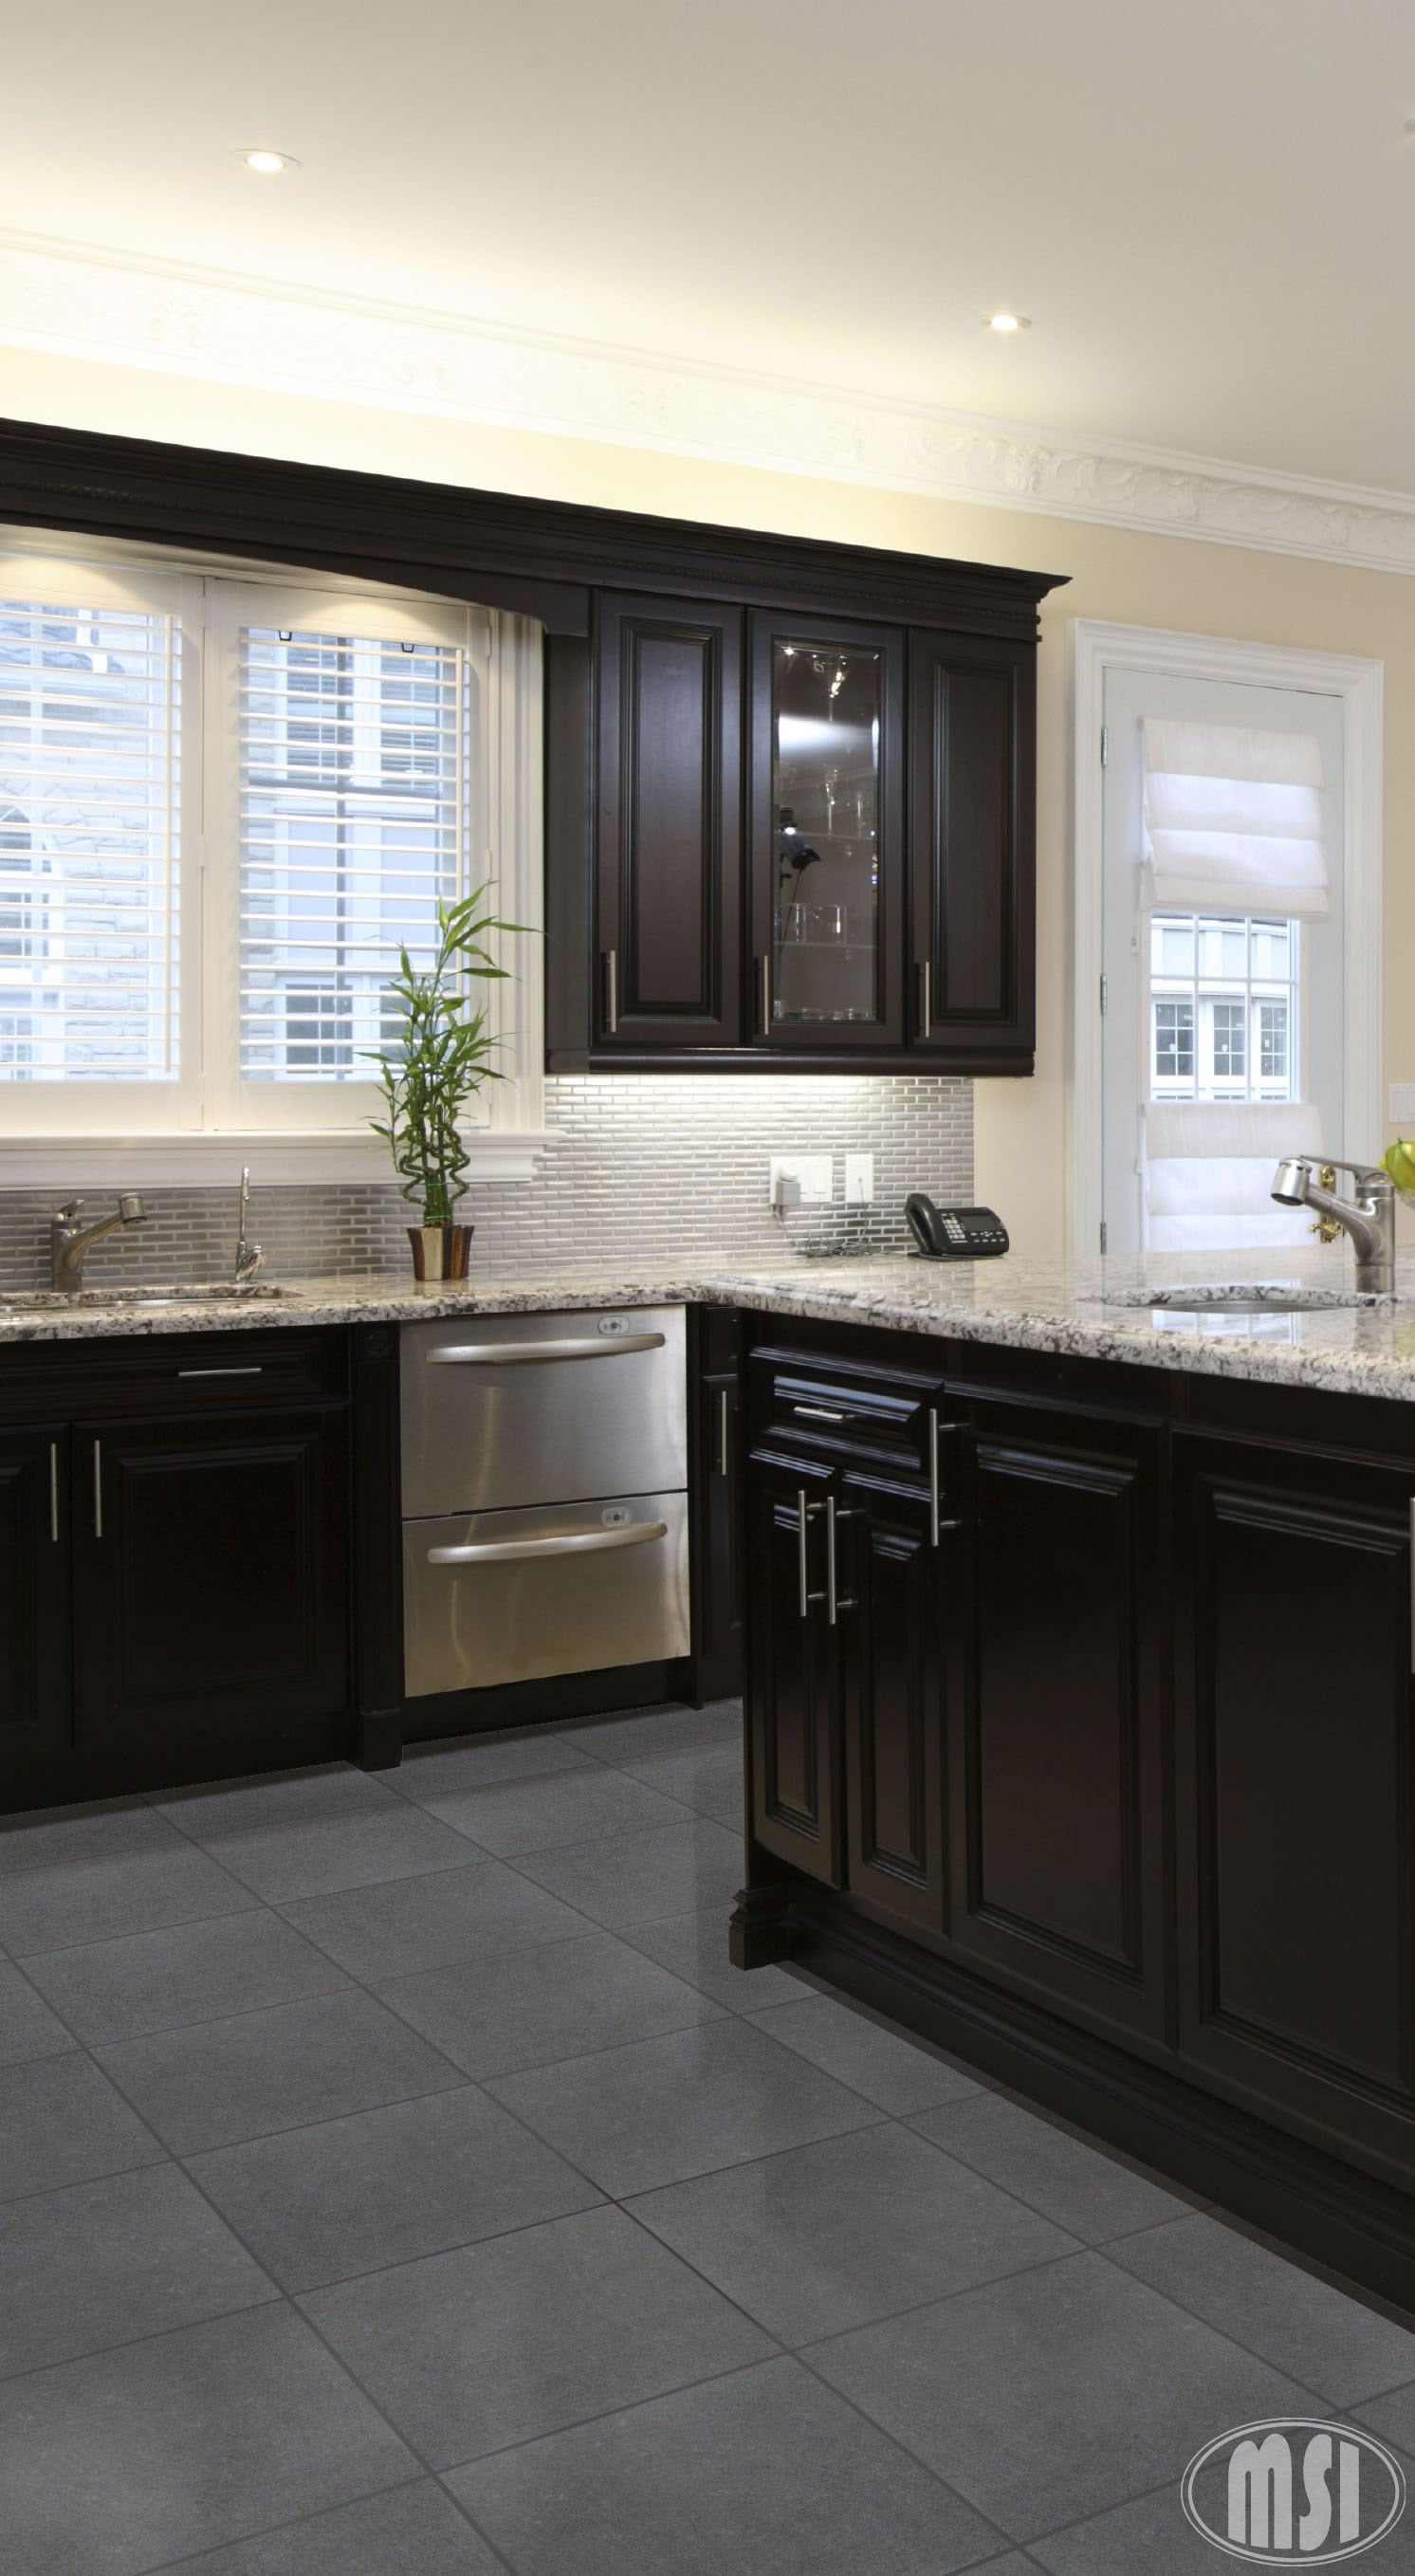 Moon White Granite With Dark Cabinets And Grey Floor Home